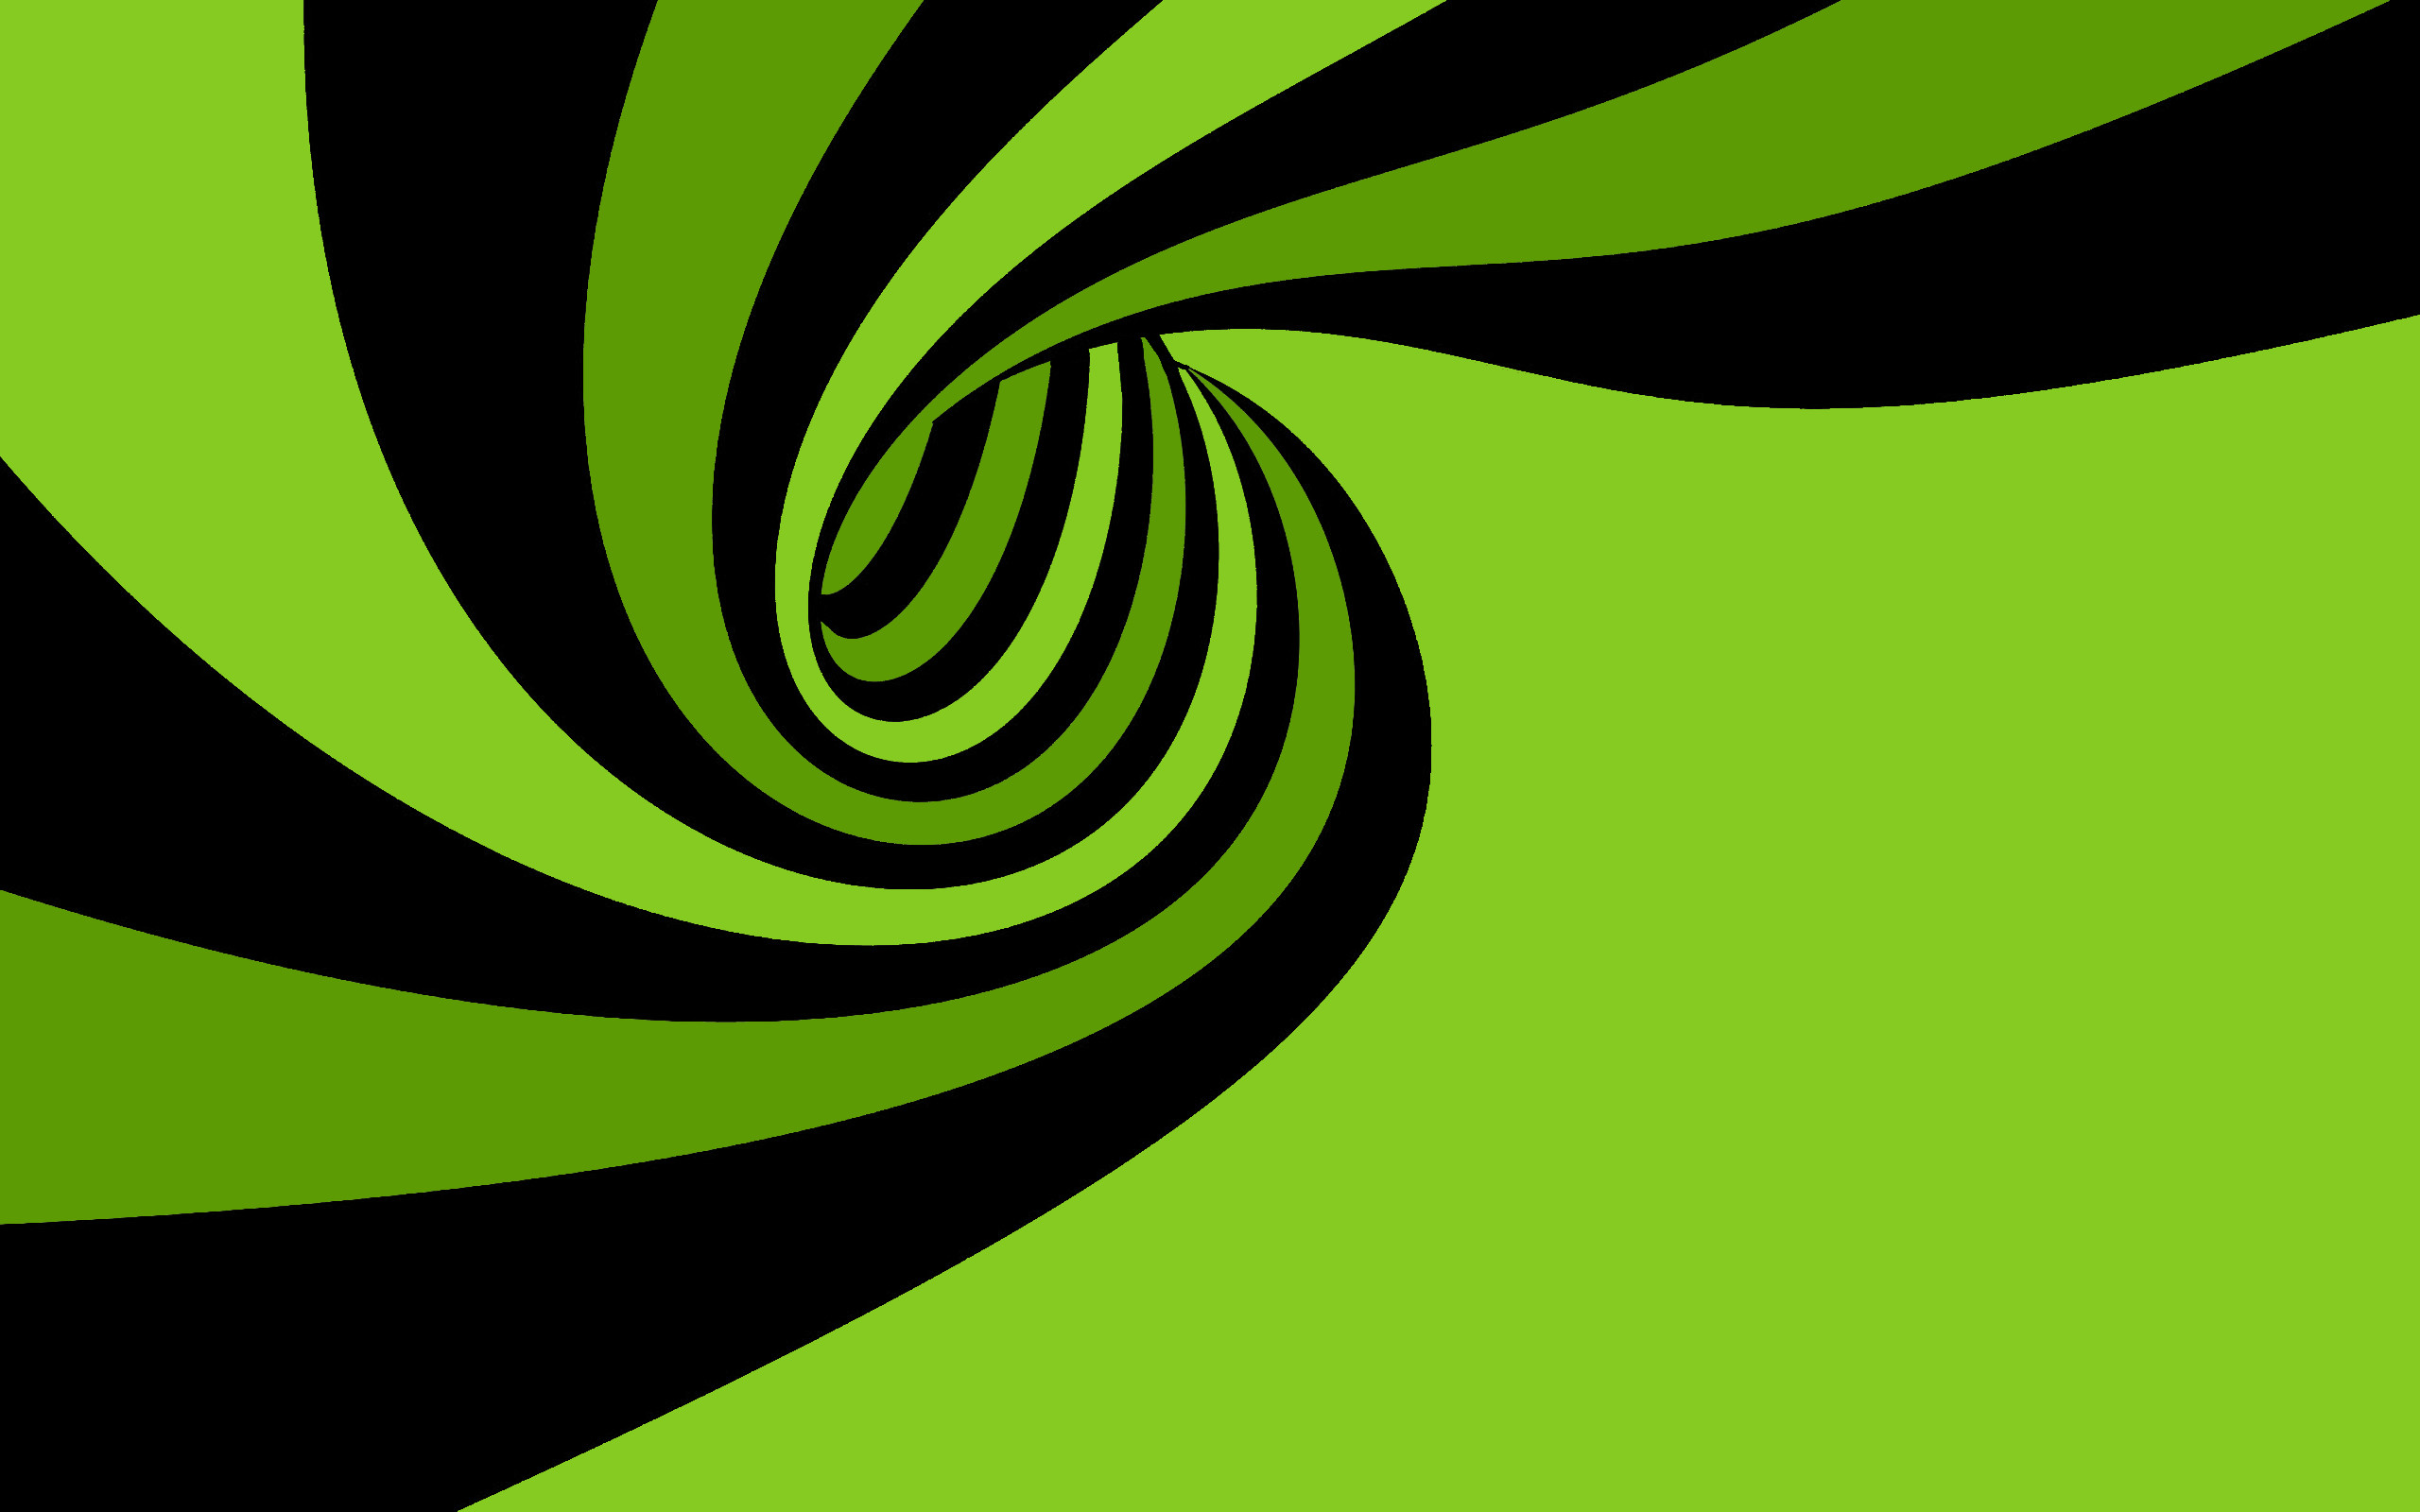 2560x1600 Green And Black Wallpapers 17 Widescreen Wallpaper. Green And Black  Wallpapers 17 Widescreen Wallpaper